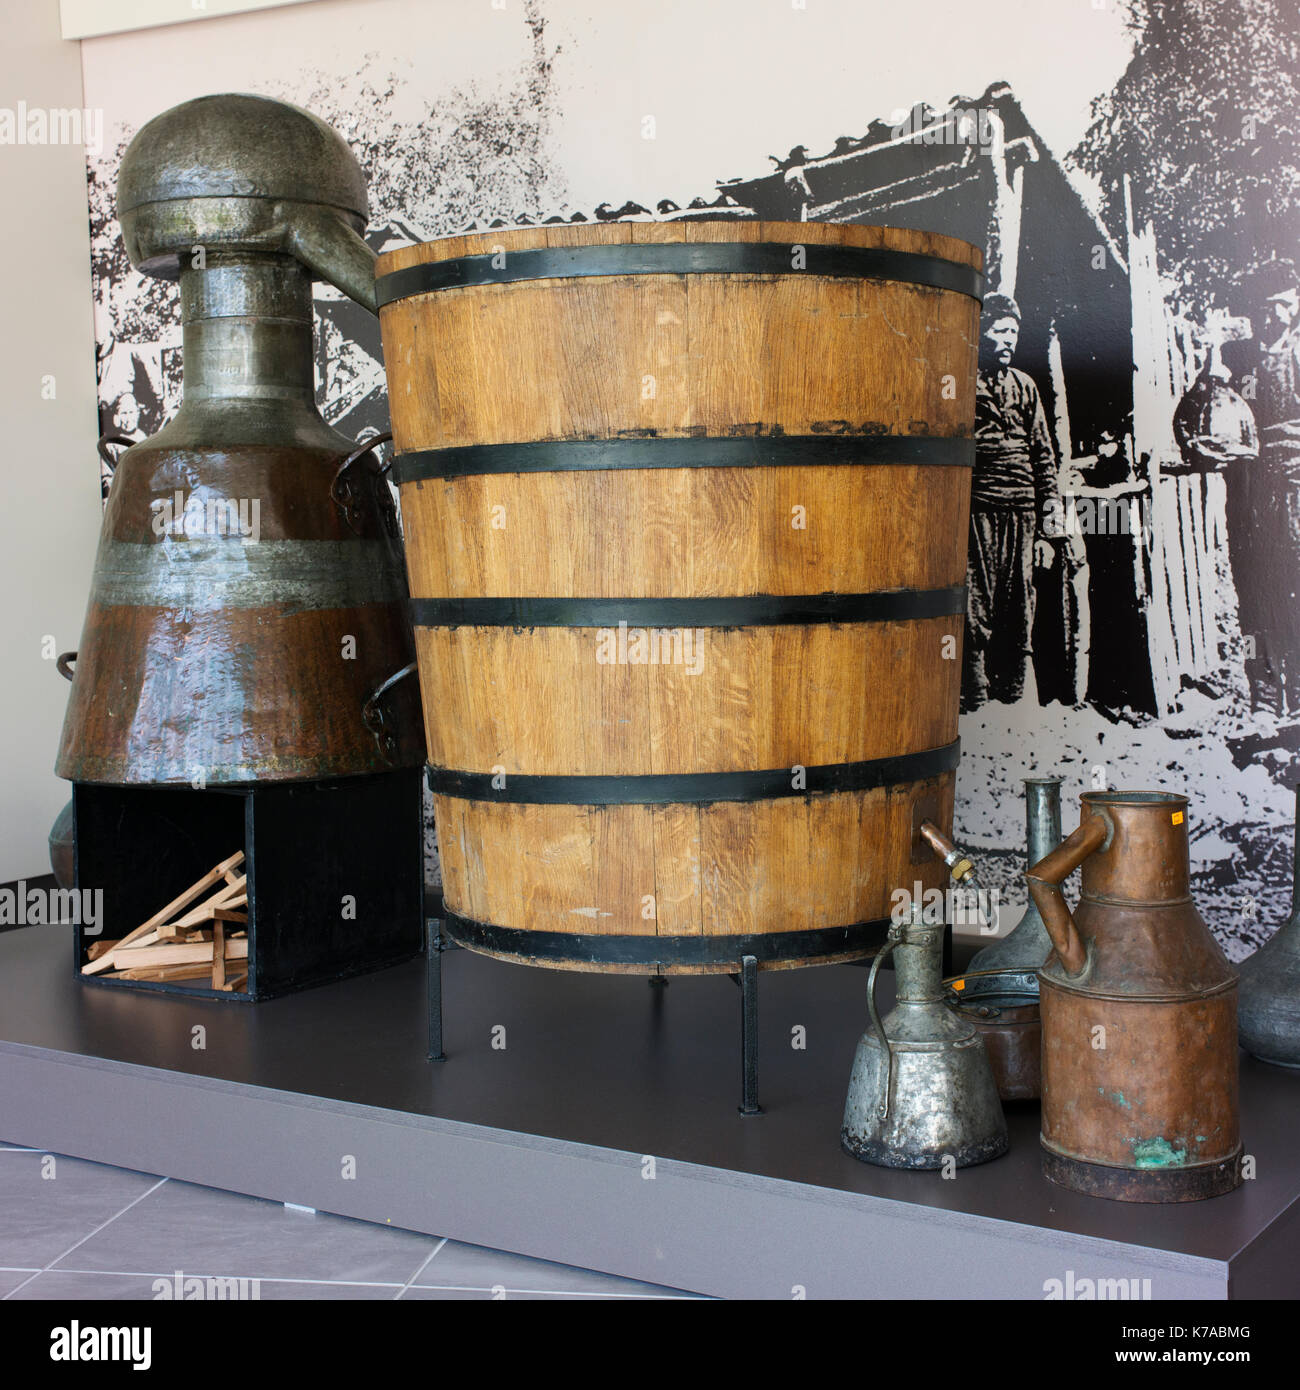 Equipment used for the distillation of rose oil on display at the Rose Museum in Kazanlak. - Stock Image